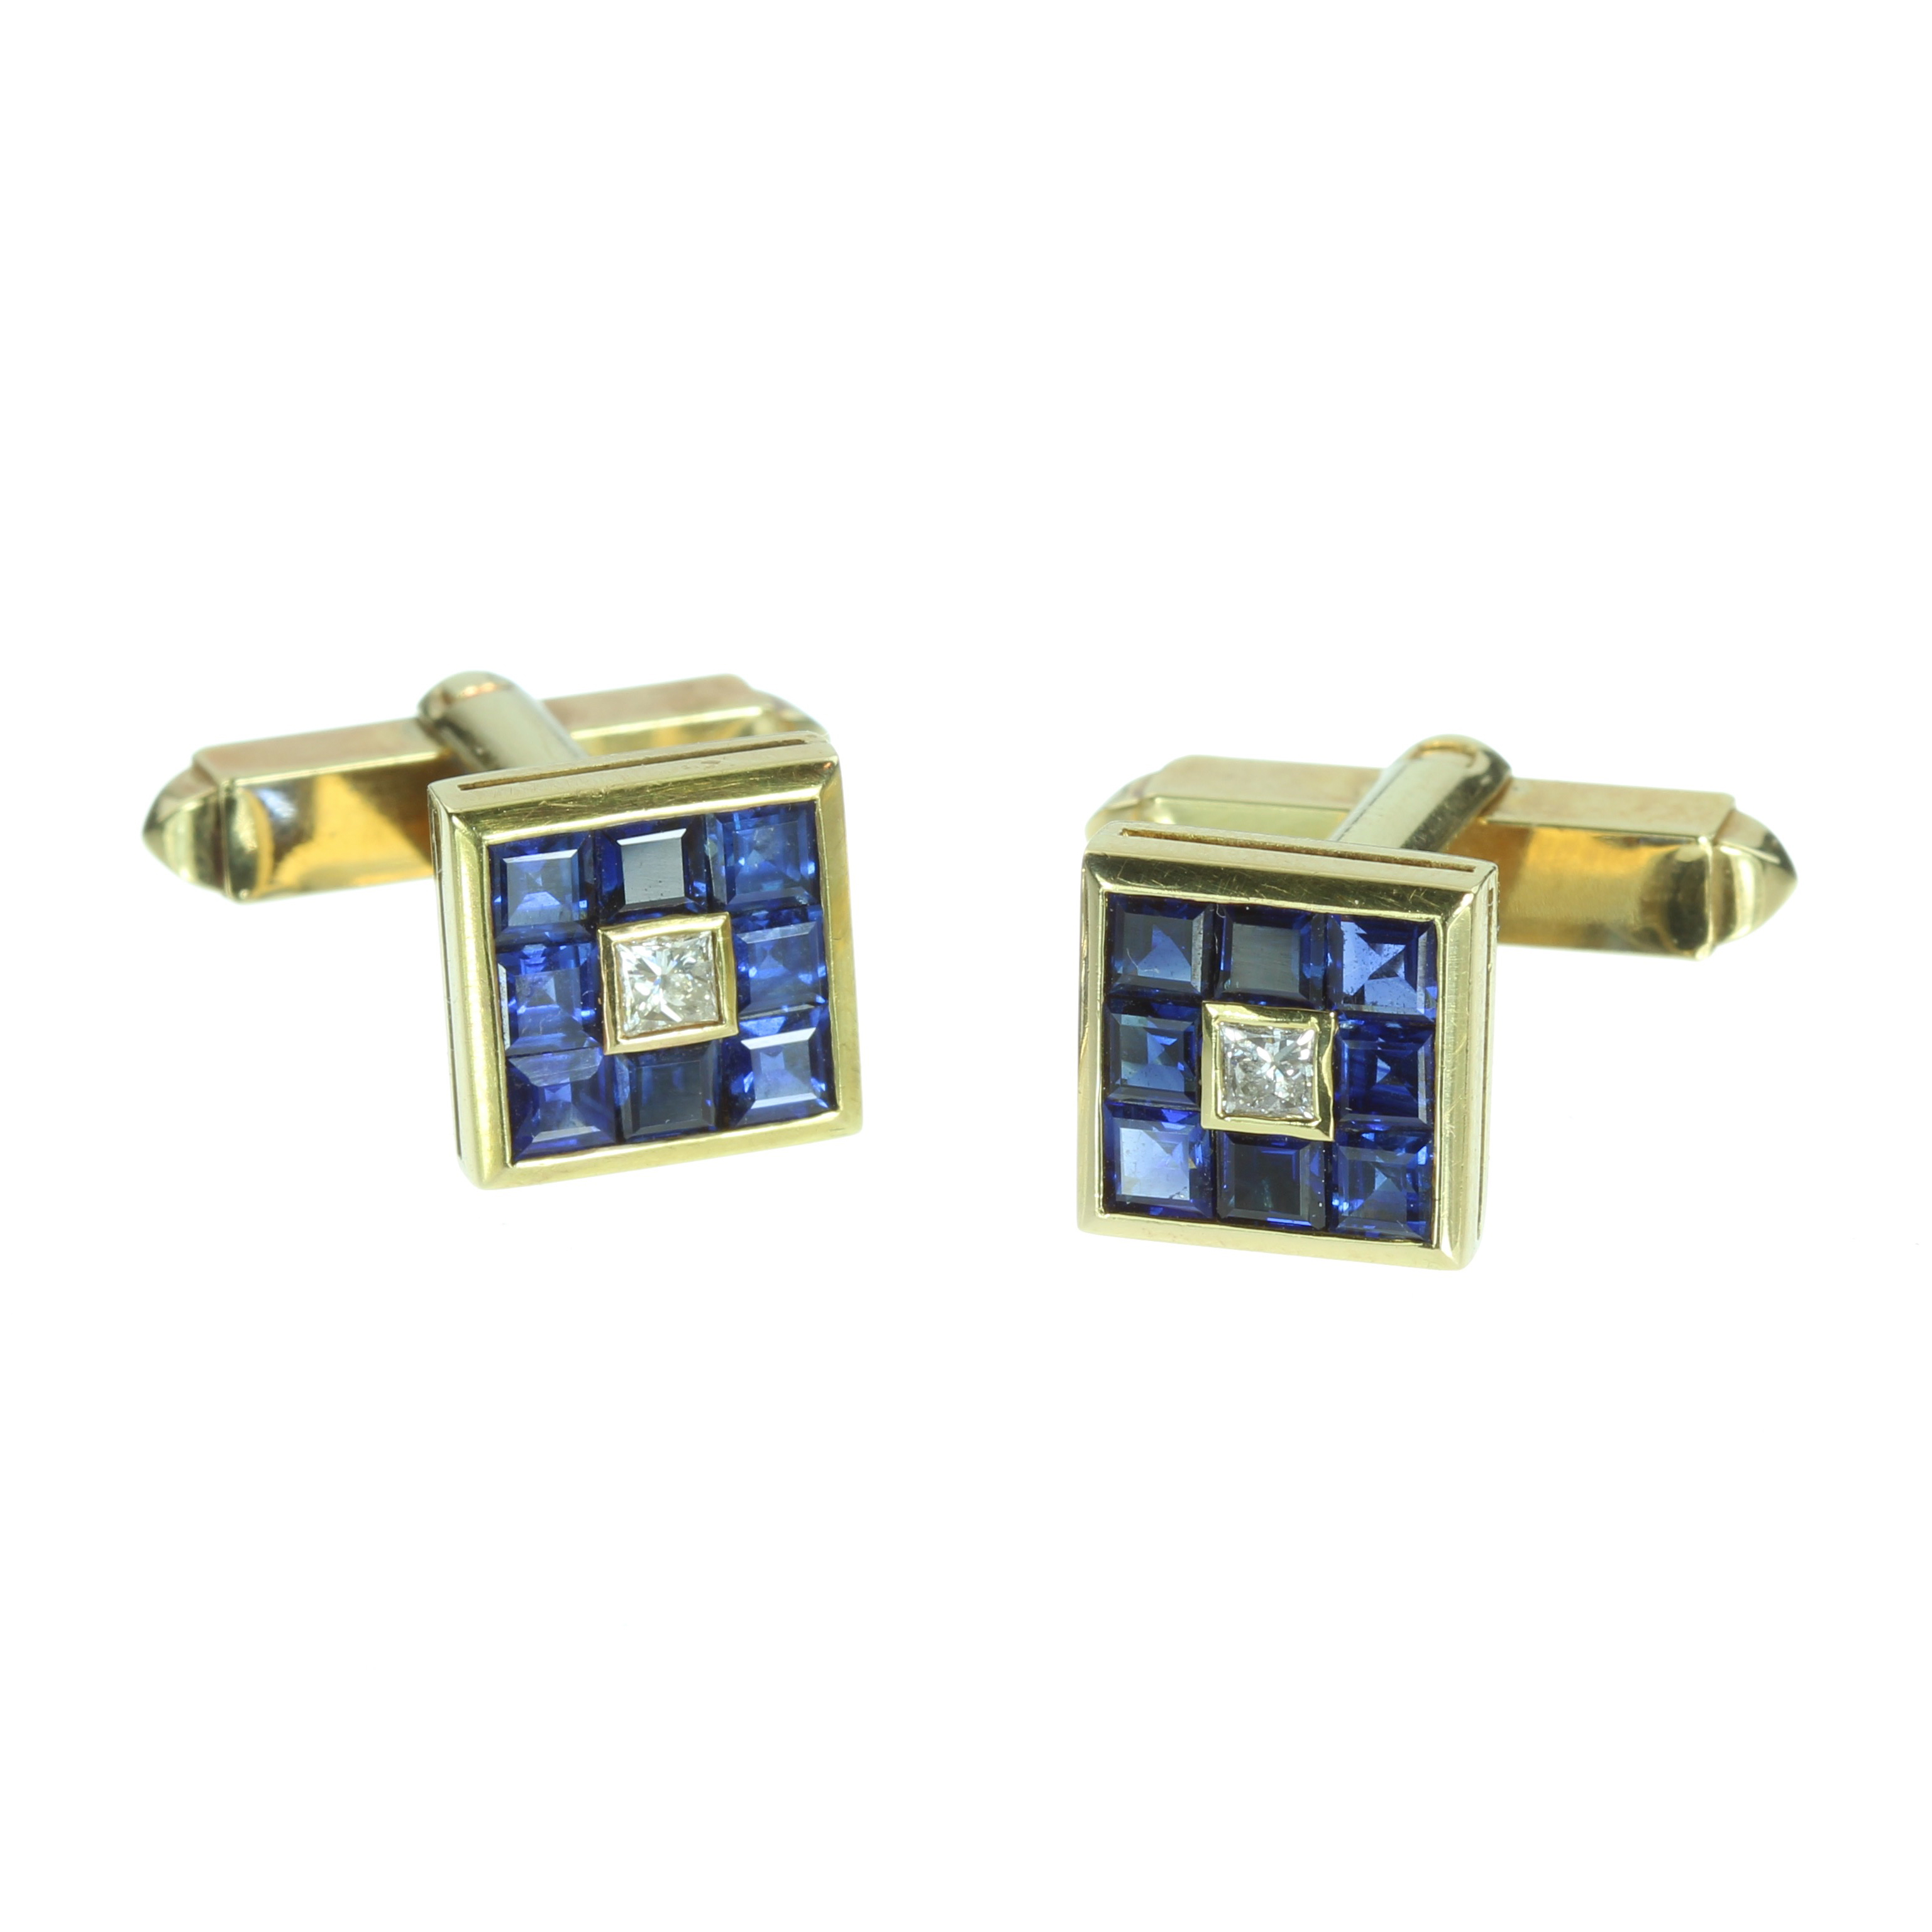 Los 41 - A PAIR OF BLUE SAPPHIRE AND DIAMOND CUFFLINKS in high carat gold each square face set with a